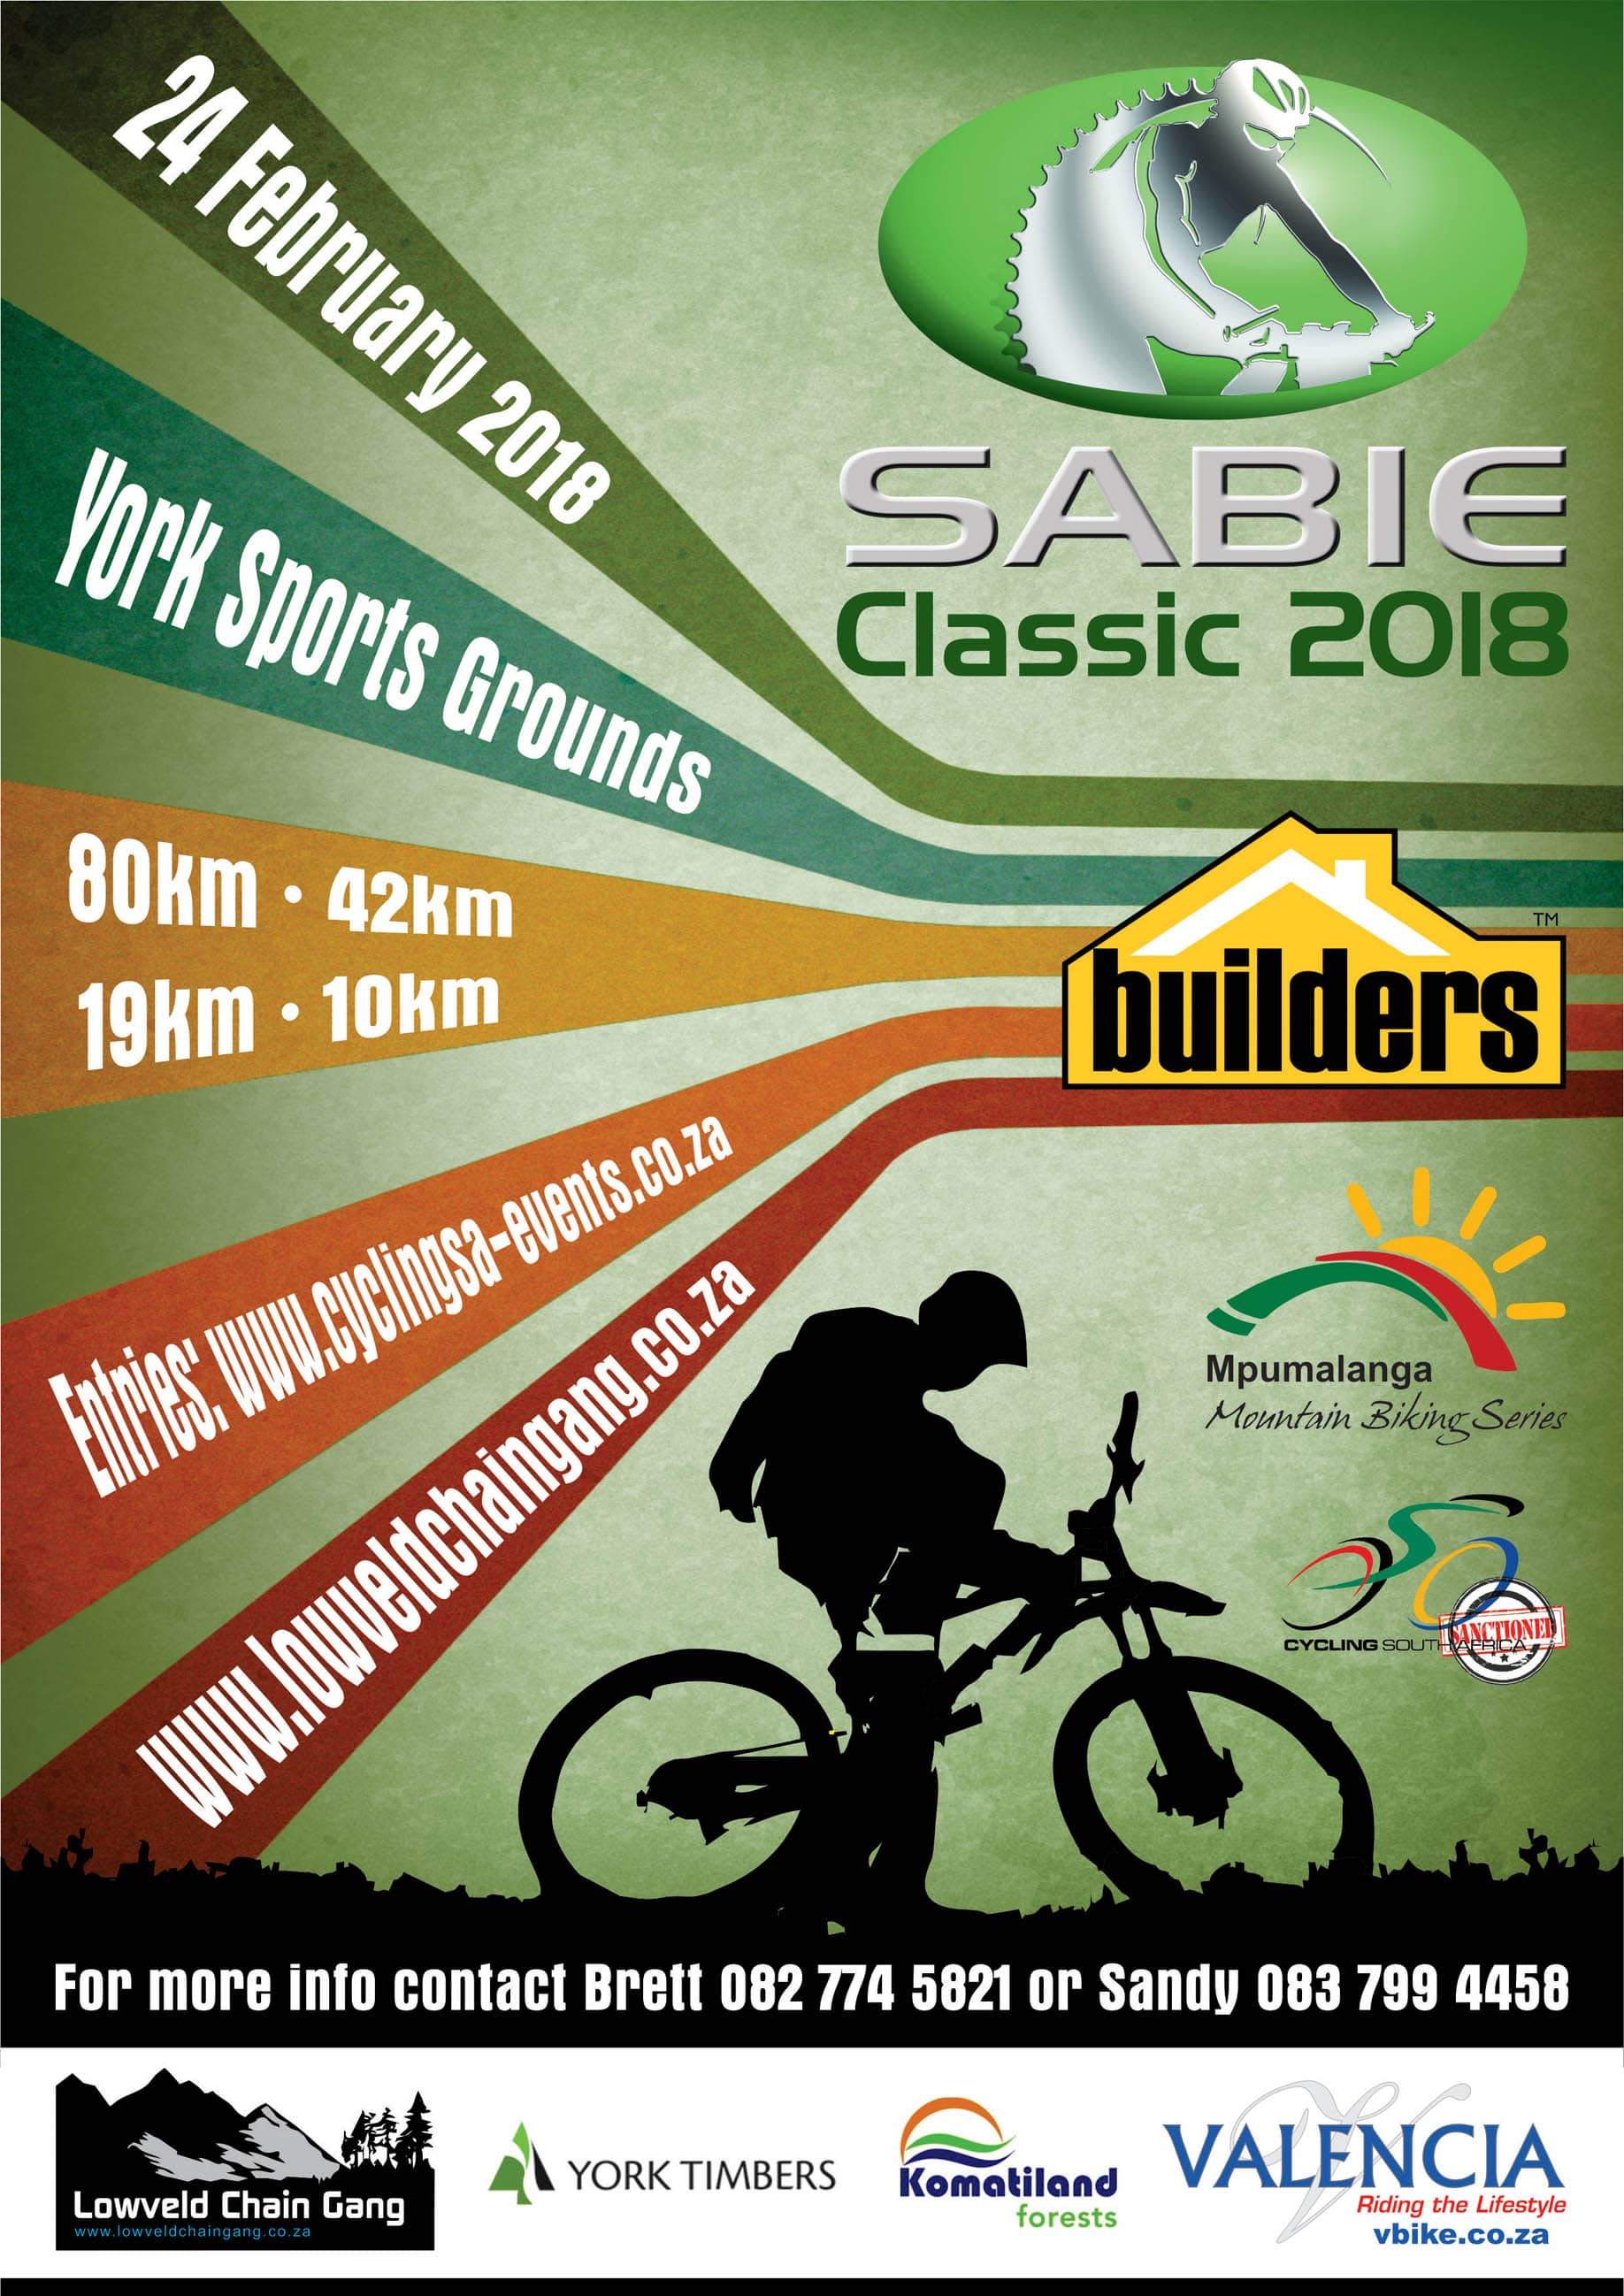 sabie classic mtb 2018 nelspruit. Black Bedroom Furniture Sets. Home Design Ideas